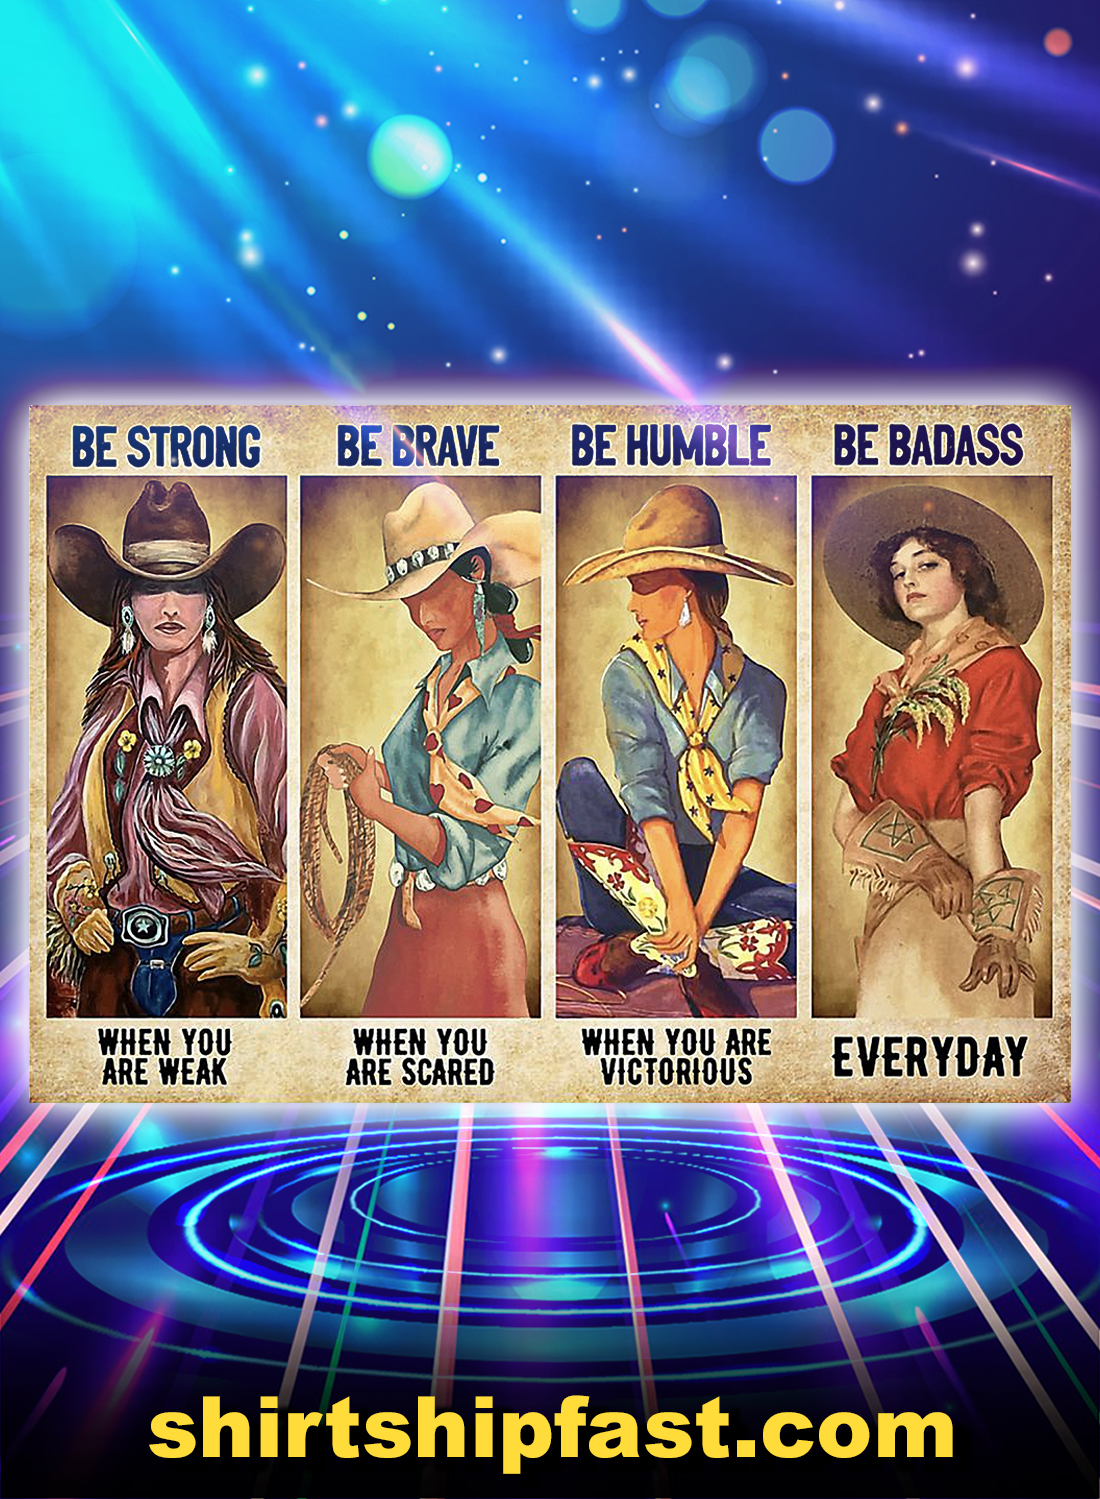 Cowgirl be strong be brave be humble be badass poster